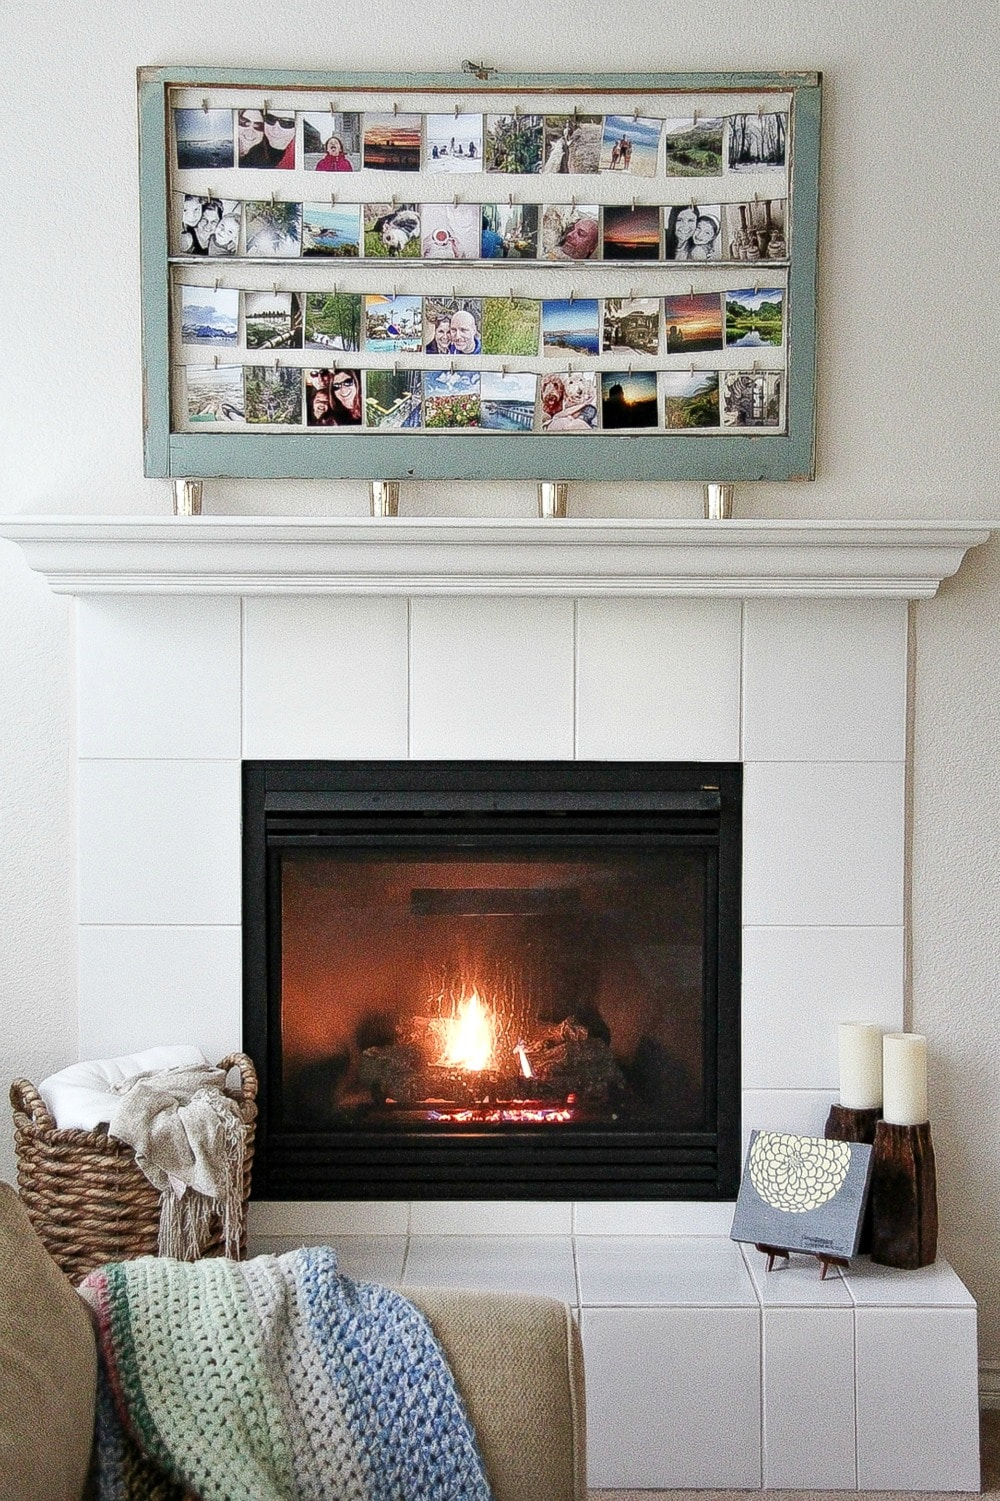 a blue frame containing square photos hanging over a fireplace